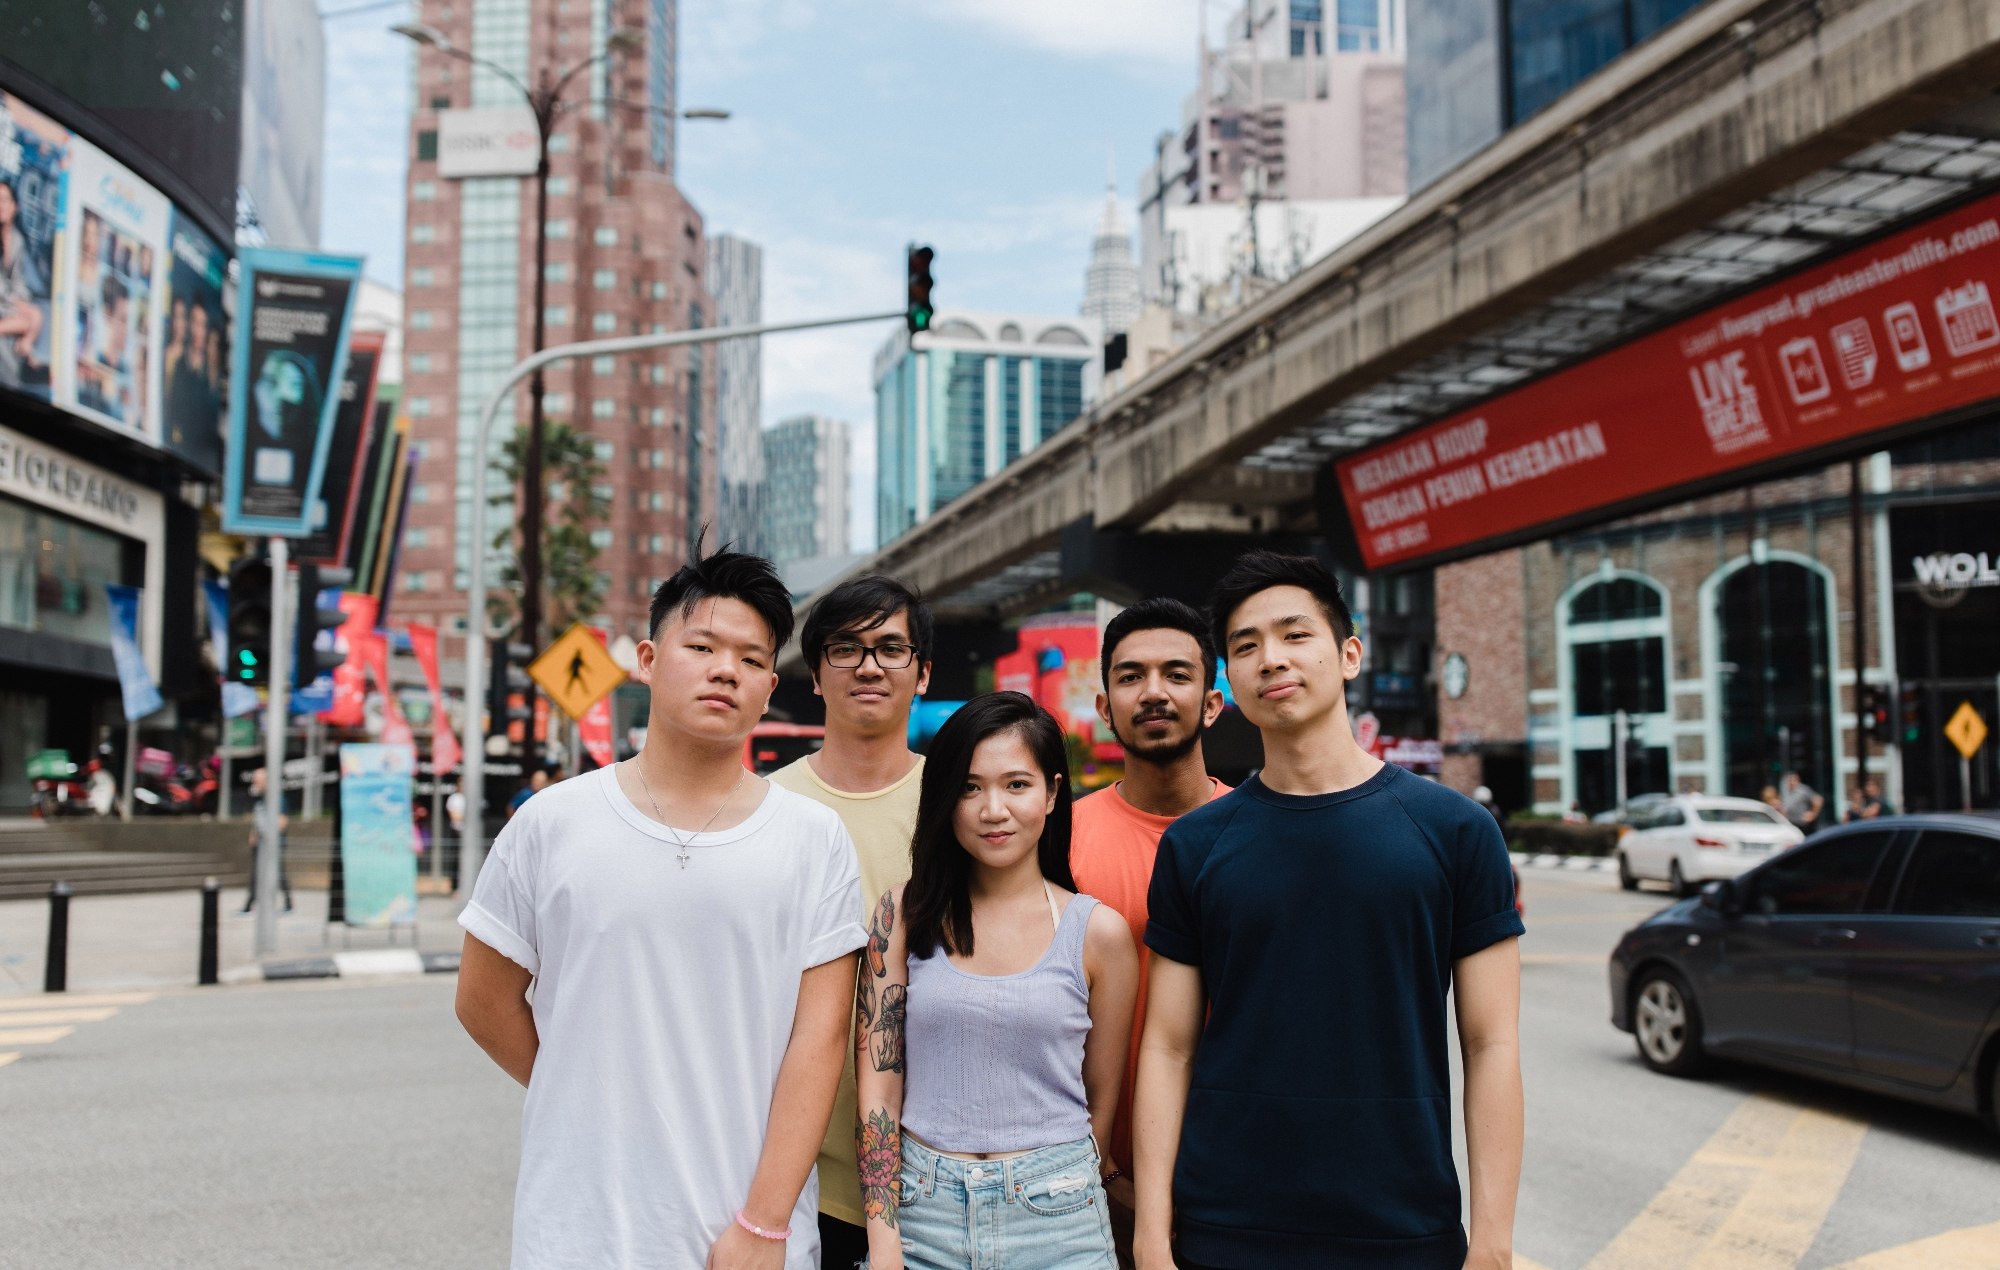 Malaysian pop punk band Night Skies & Visions drop 'Sugar, Spice & Some Things Nice' EP